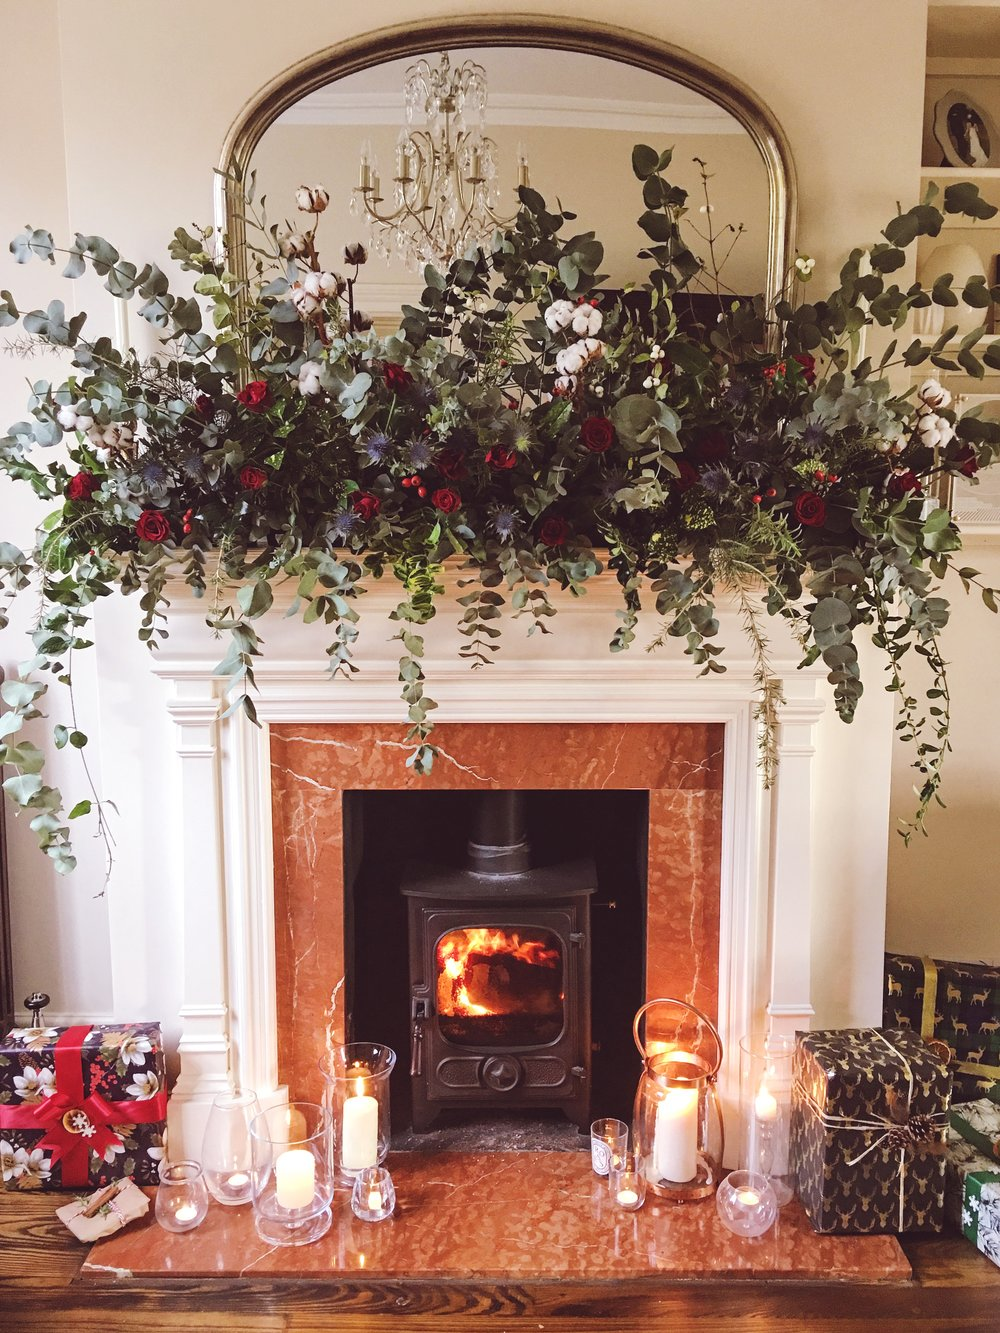 My home at christmas how to make this fireplace garland my home at christmas how to make this fireplace garland melanie lissack interiors solutioingenieria Gallery